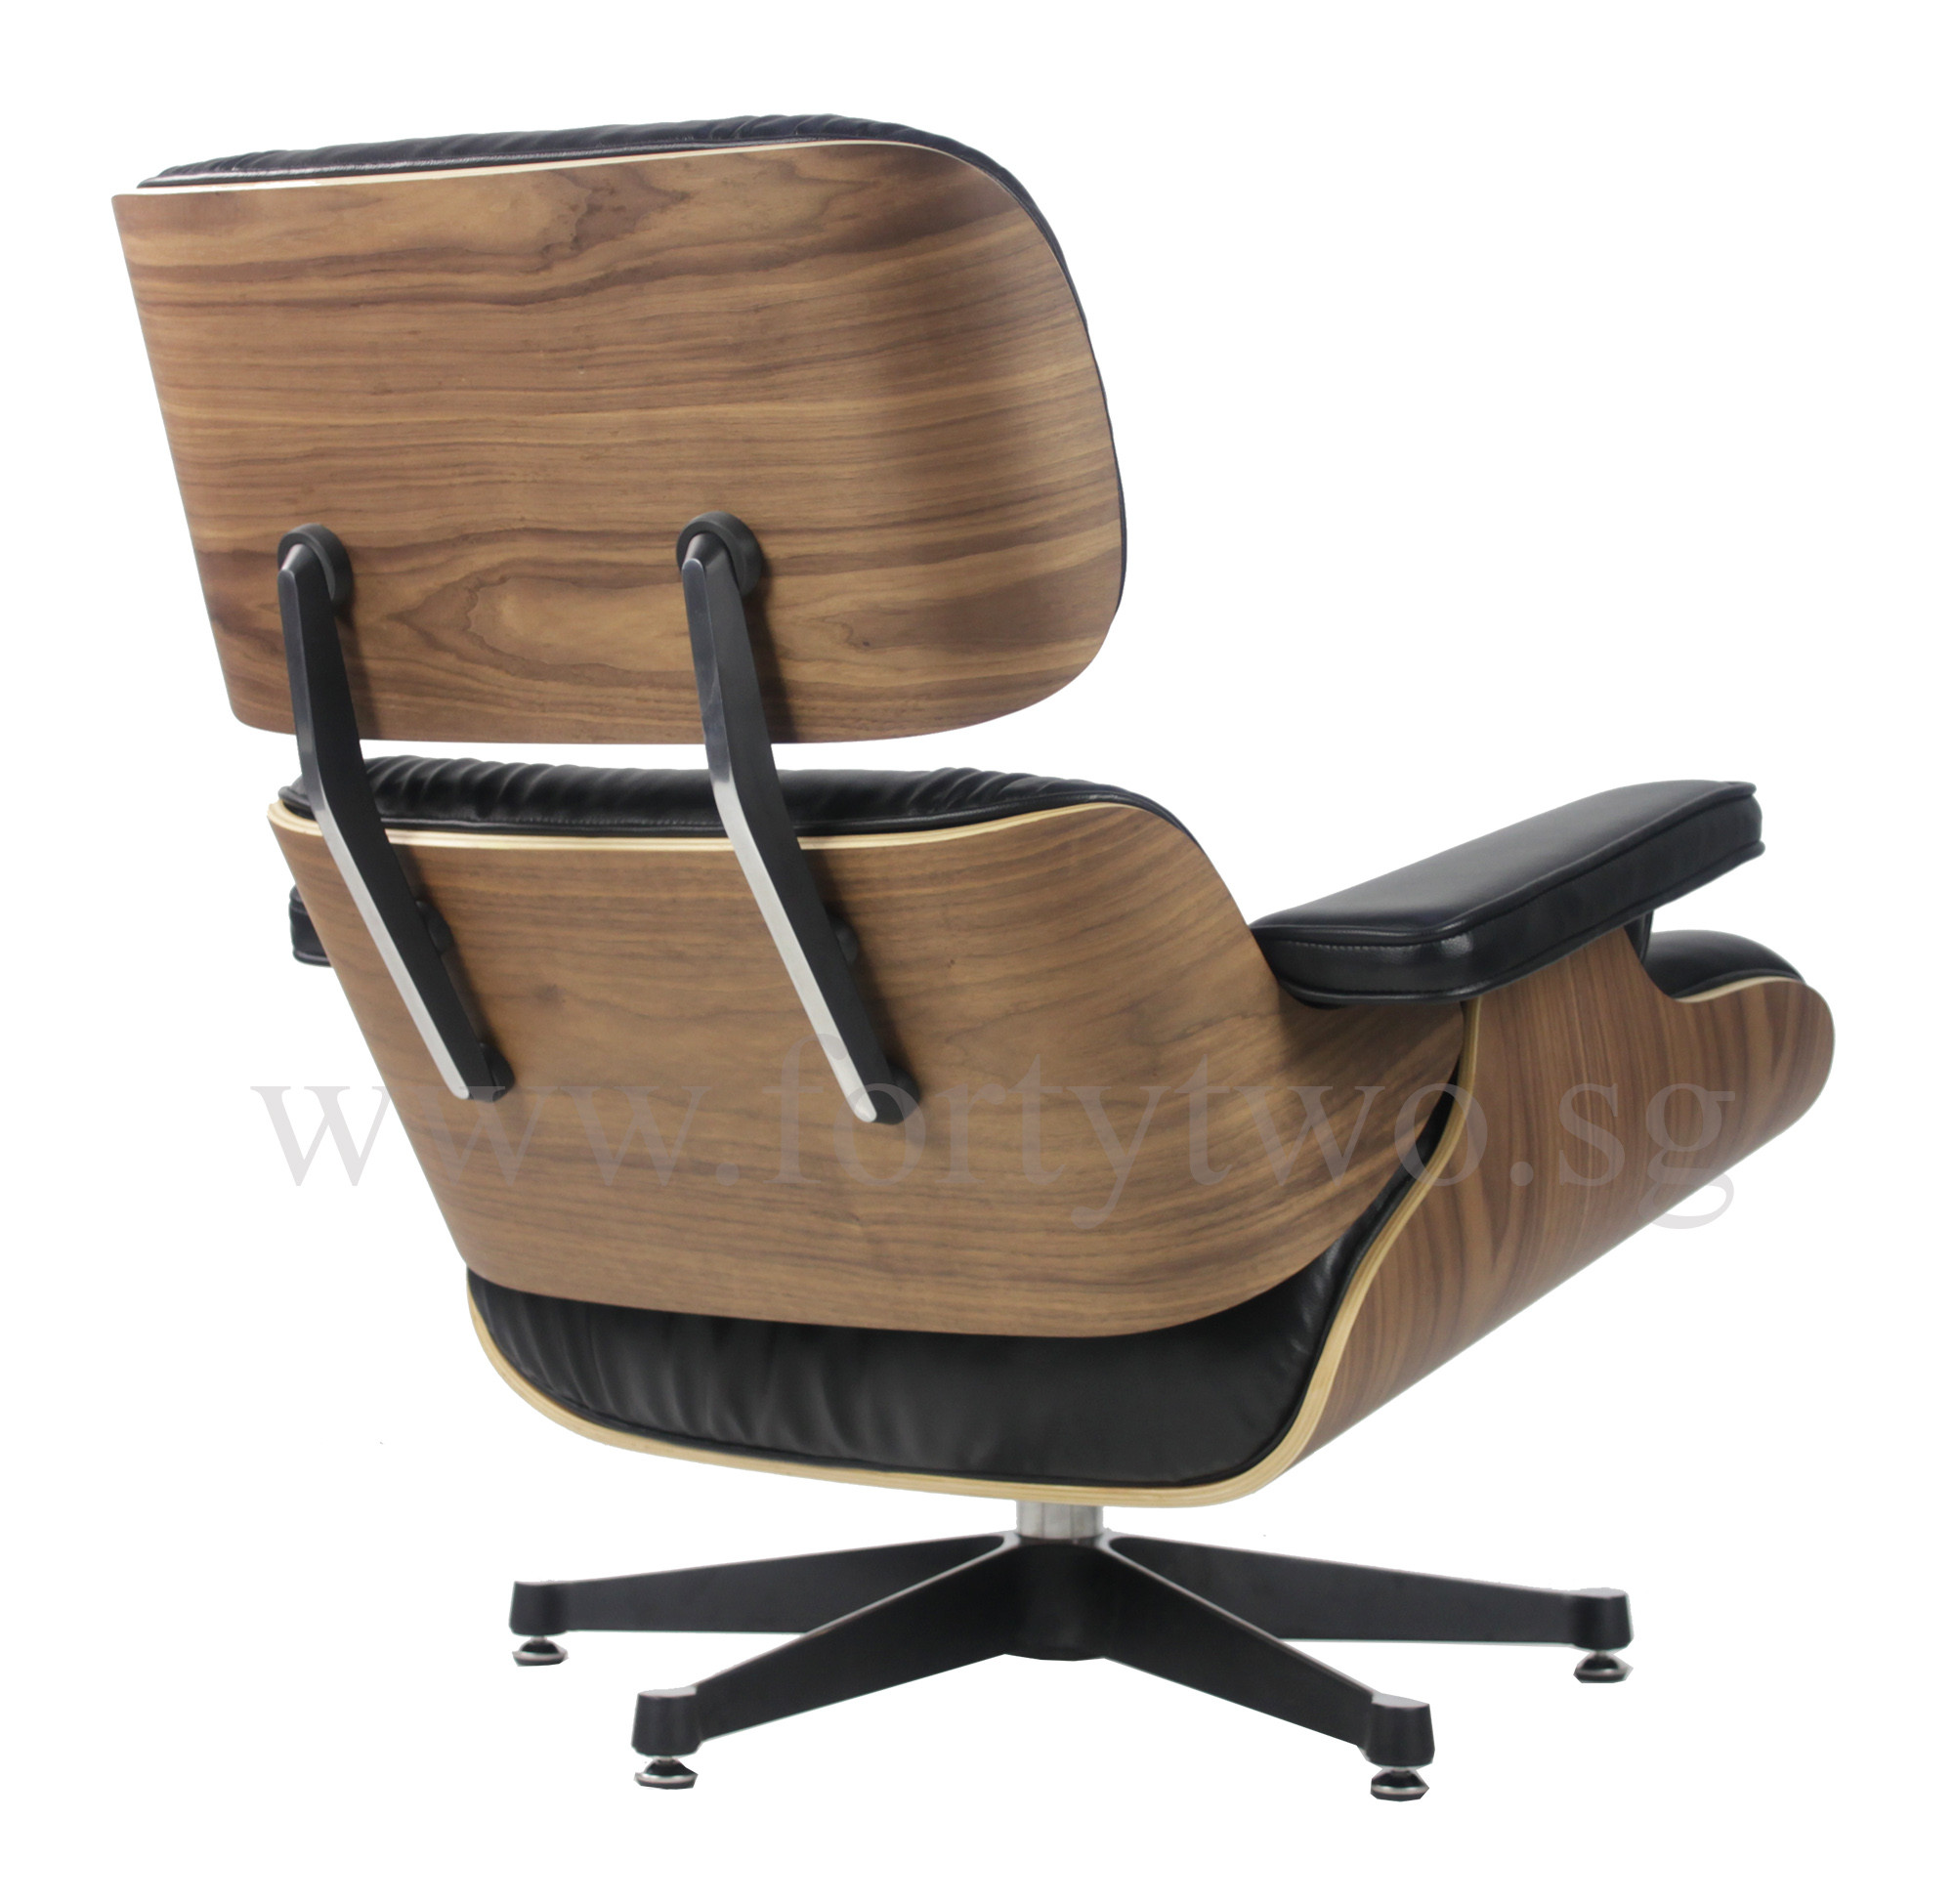 Designer Replica Eames Lounge Chair Black